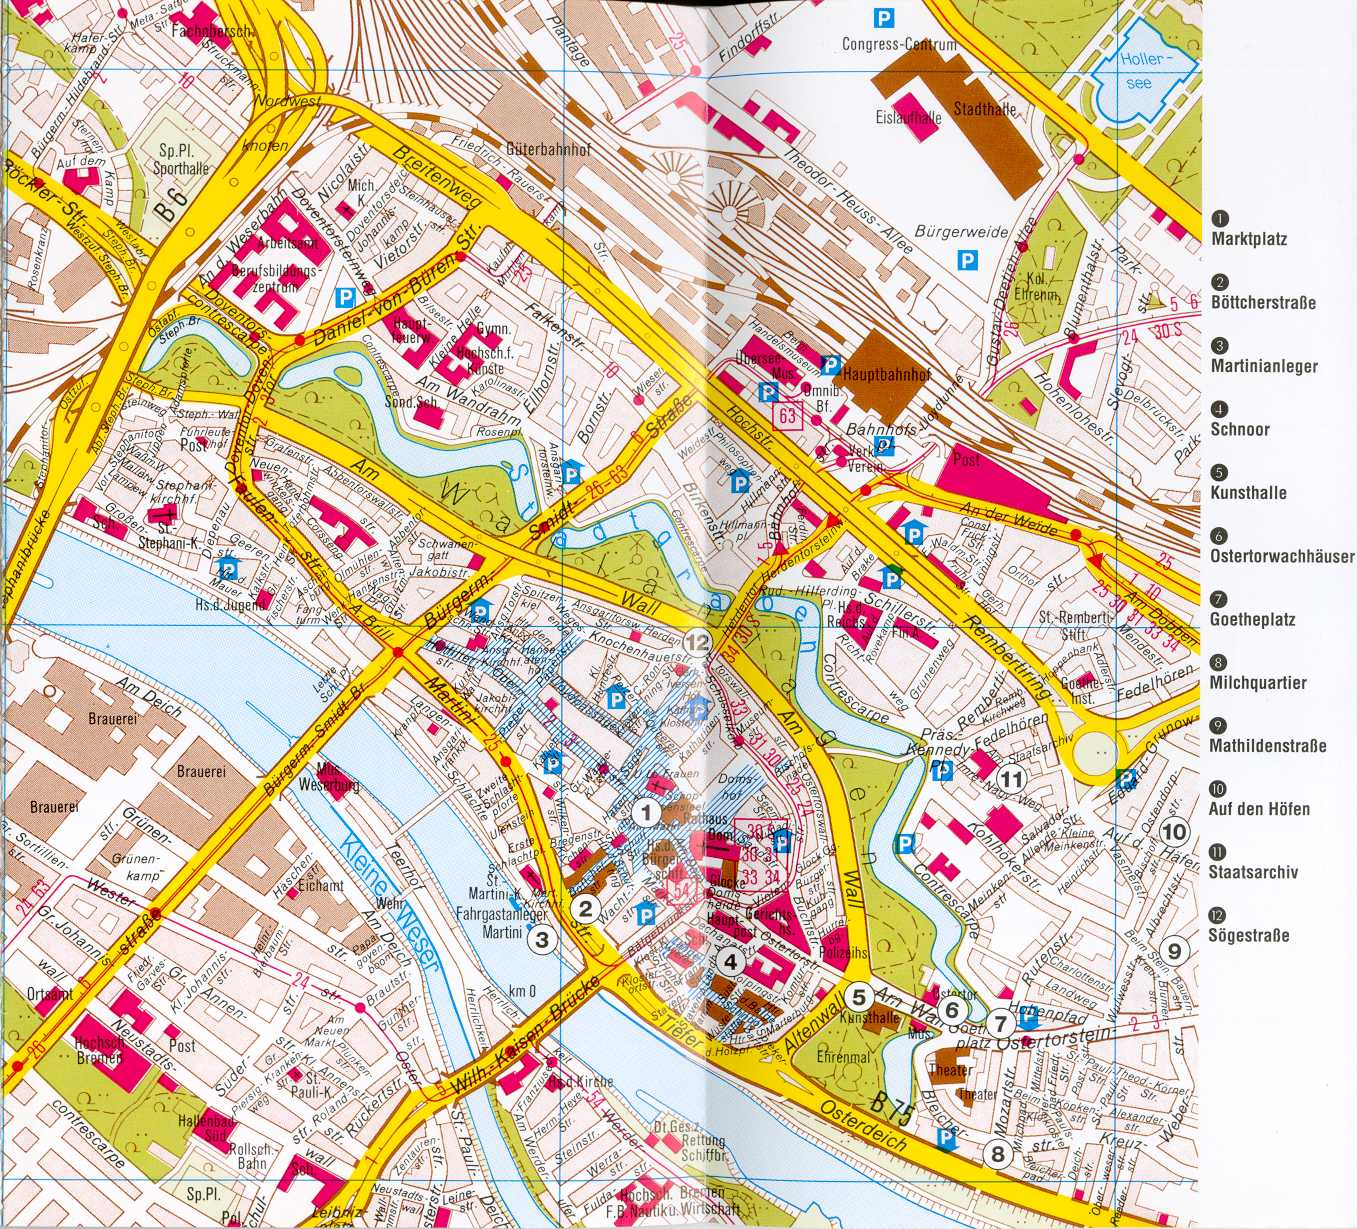 Bremen Map Detailed City And Metro Maps Of Bremen For Download - Germany map bremen